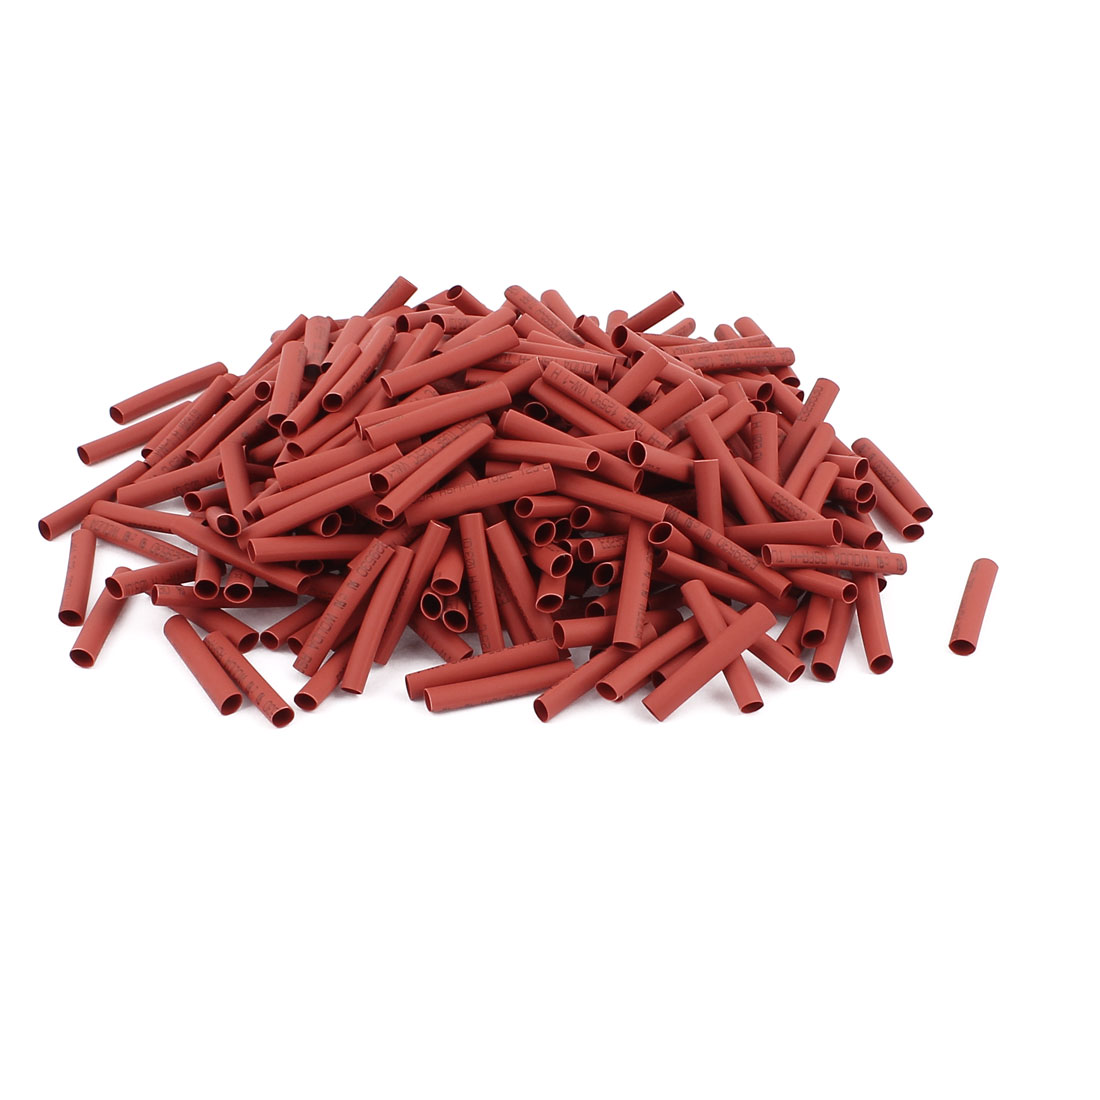 25mm Long Electrical Connection Cable Sleeve Heat Shrink Wrap Tubing Red 350Pcs